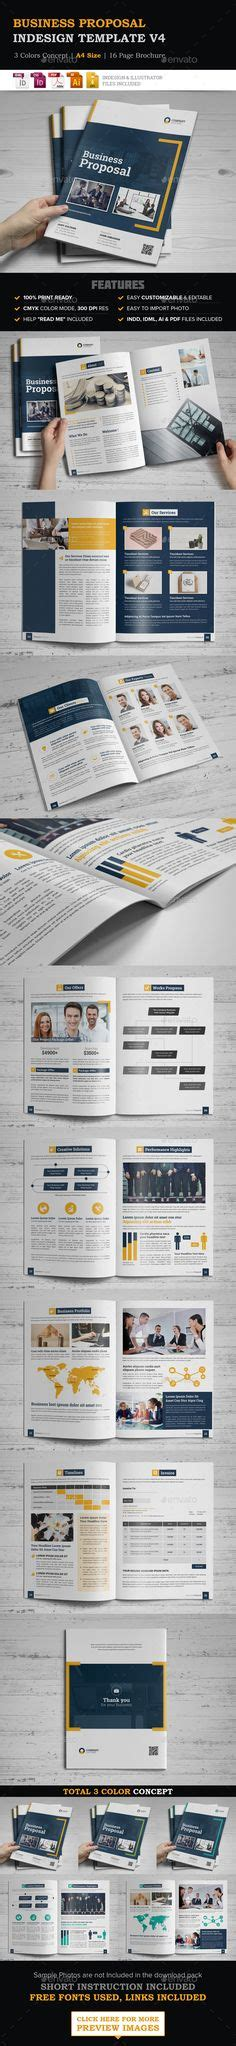 Food Restaurant Bifold Brochure Indesign Template Best Indesign Templates And Brochures Ideas Business Reply Mail Template Indesign